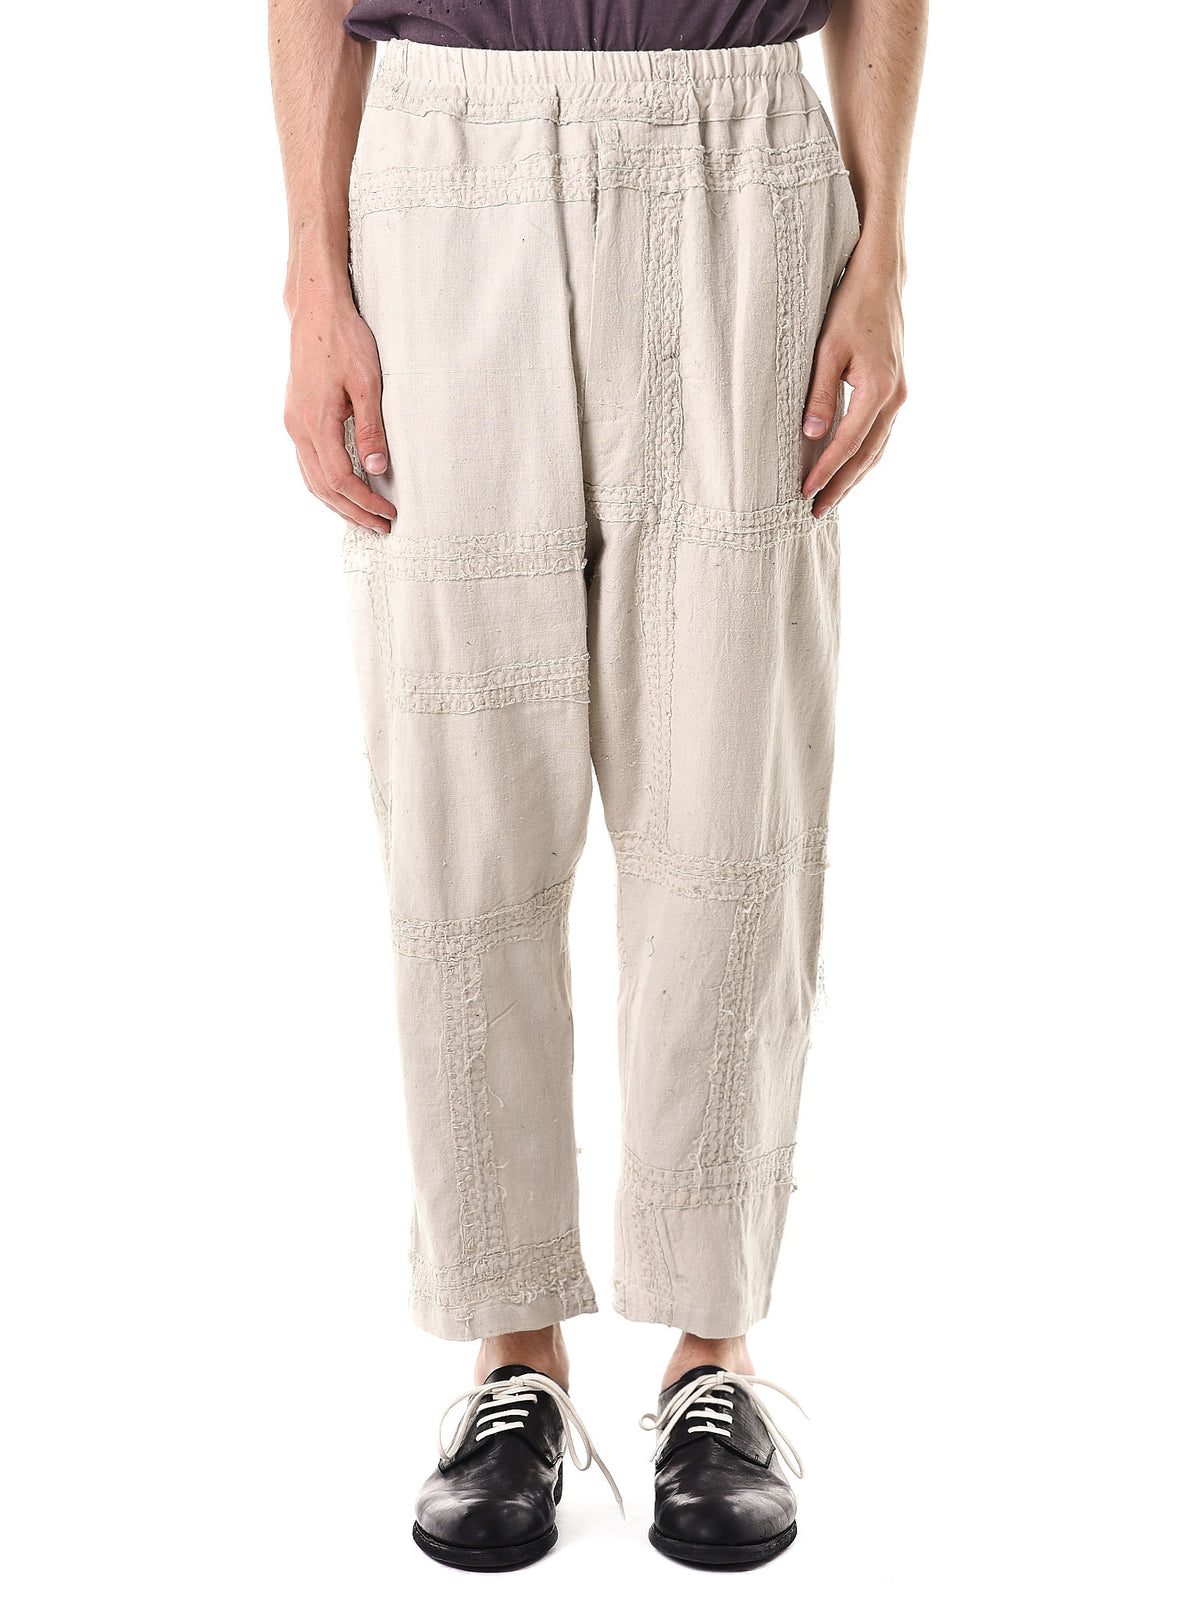 Stitched 'Cotton Khadi' Pants (130262M-NATURAL) - H. Lorenzo